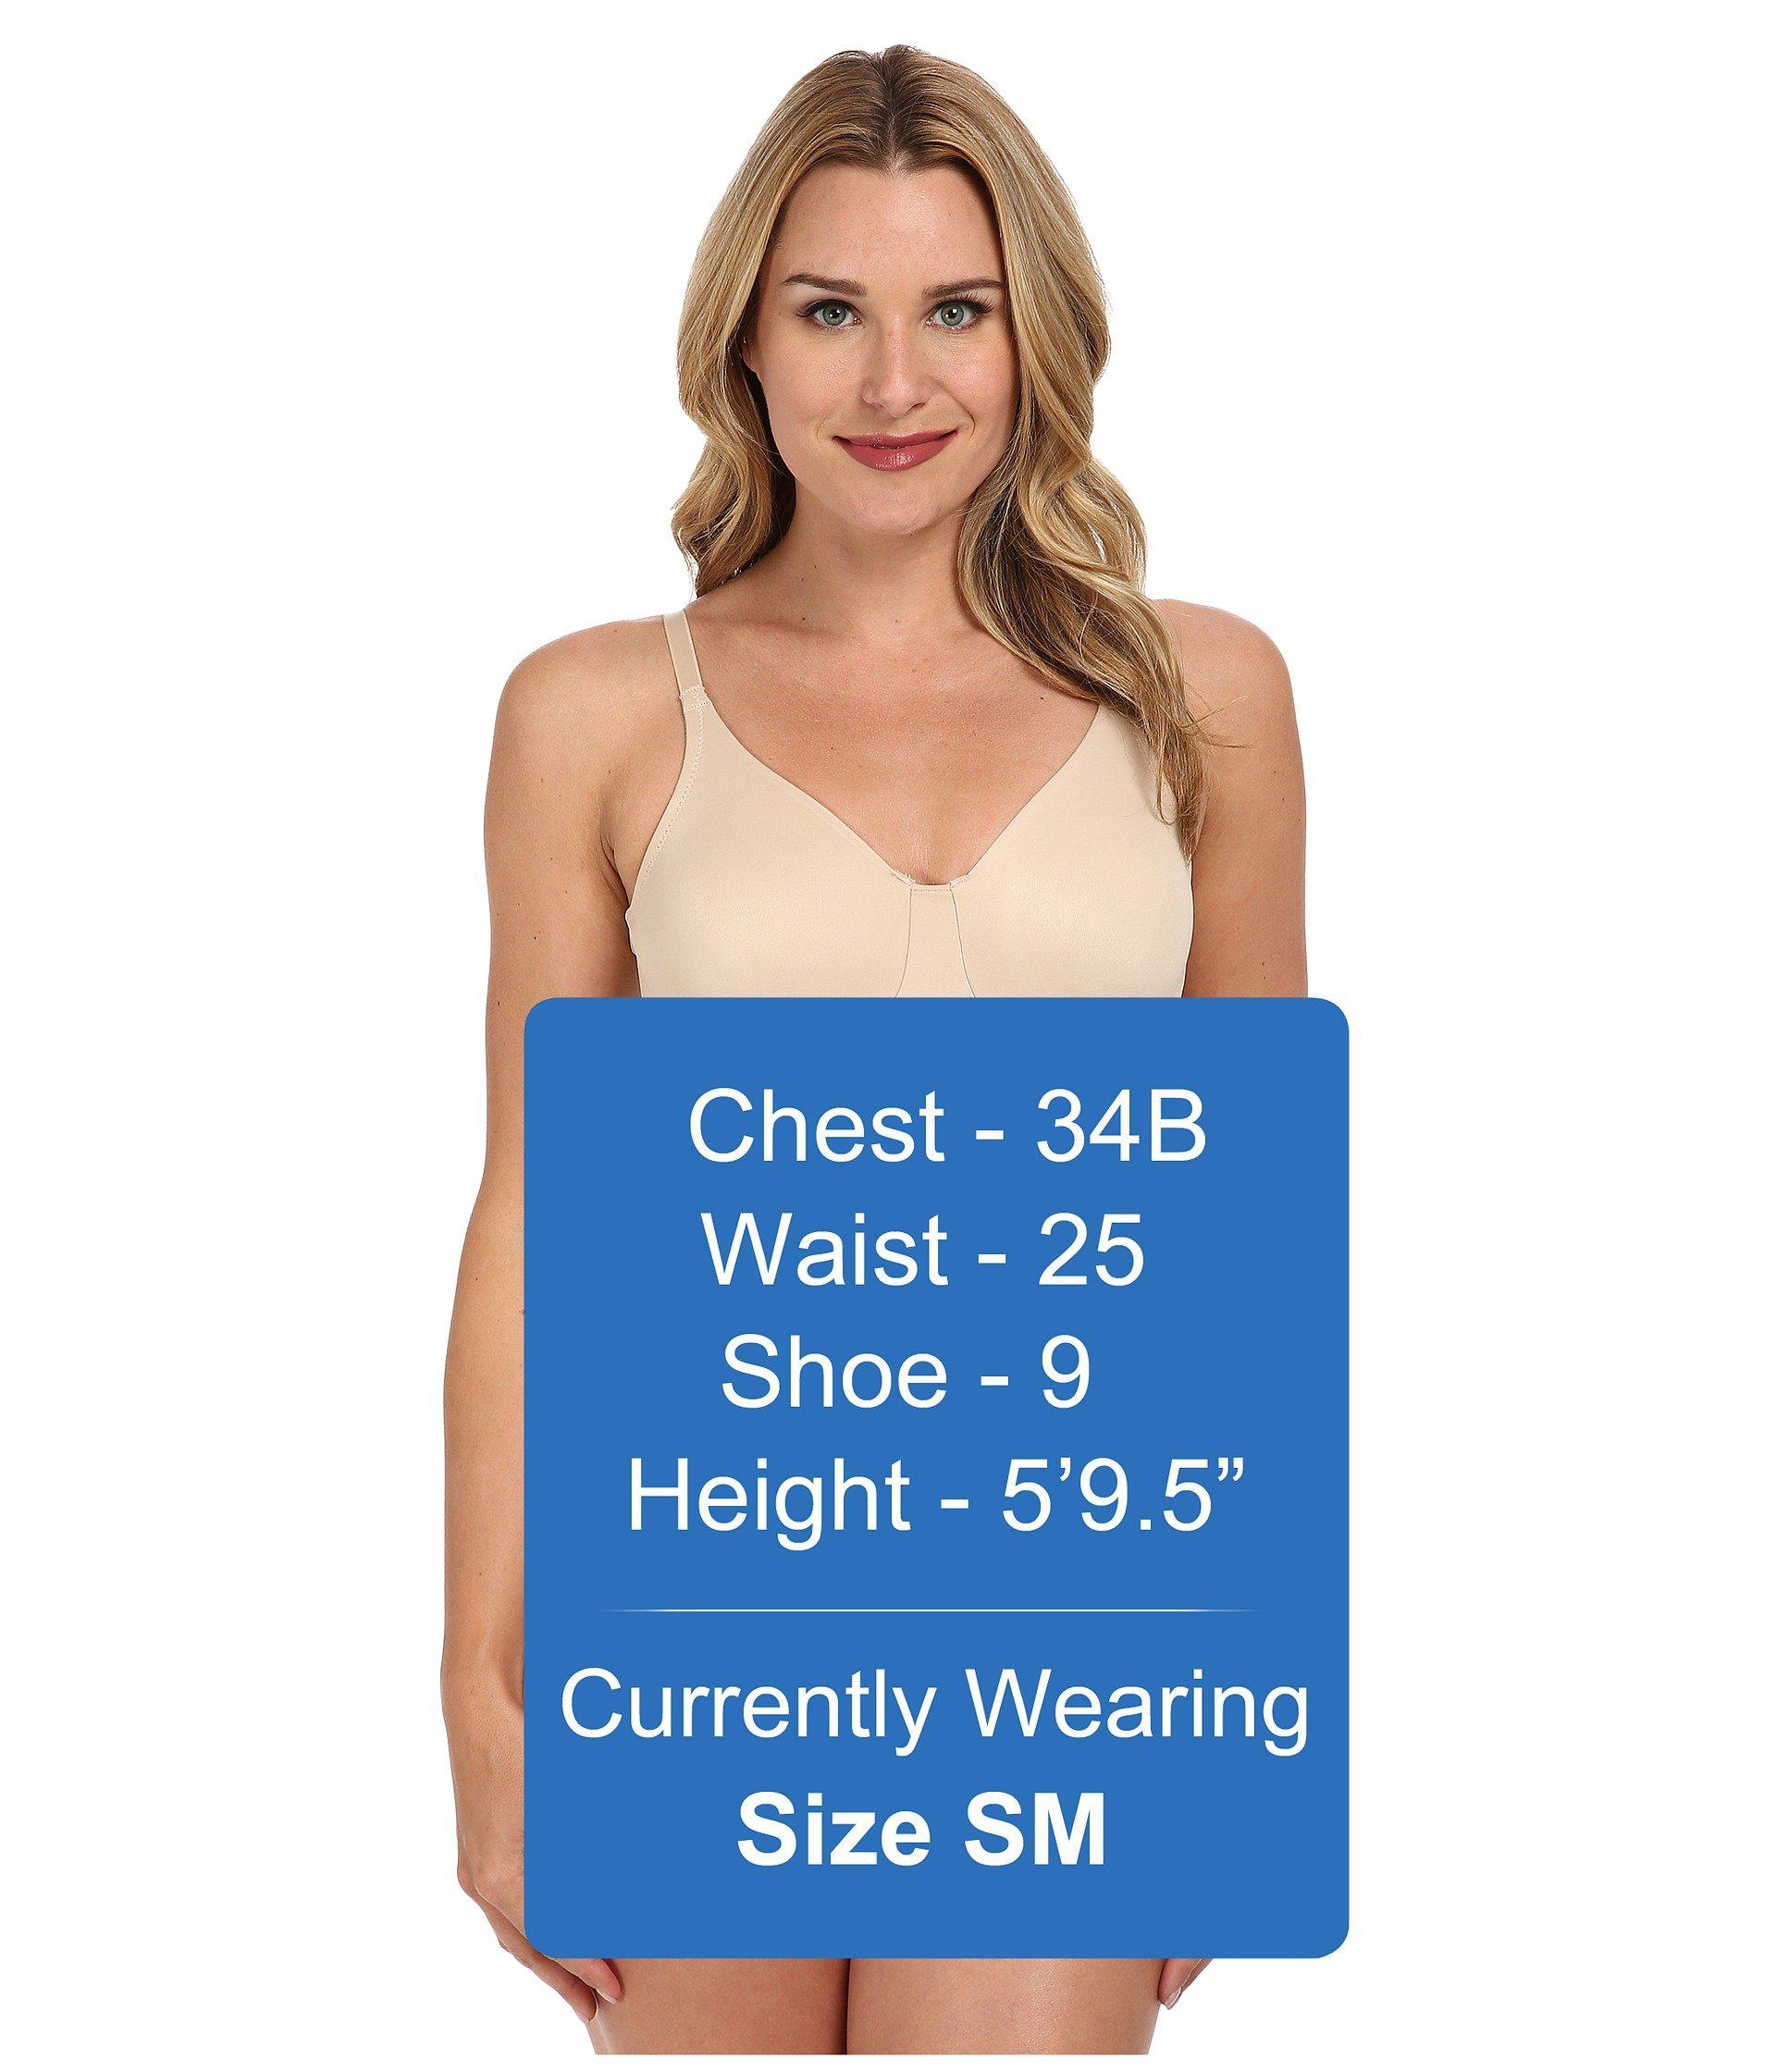 8e8df3b2d445f Miraclesuit - Natural Extra Firm Comfort Leg Smooth Molded Cup Bodybriefer  (nude) Women s Bra. View fullscreen